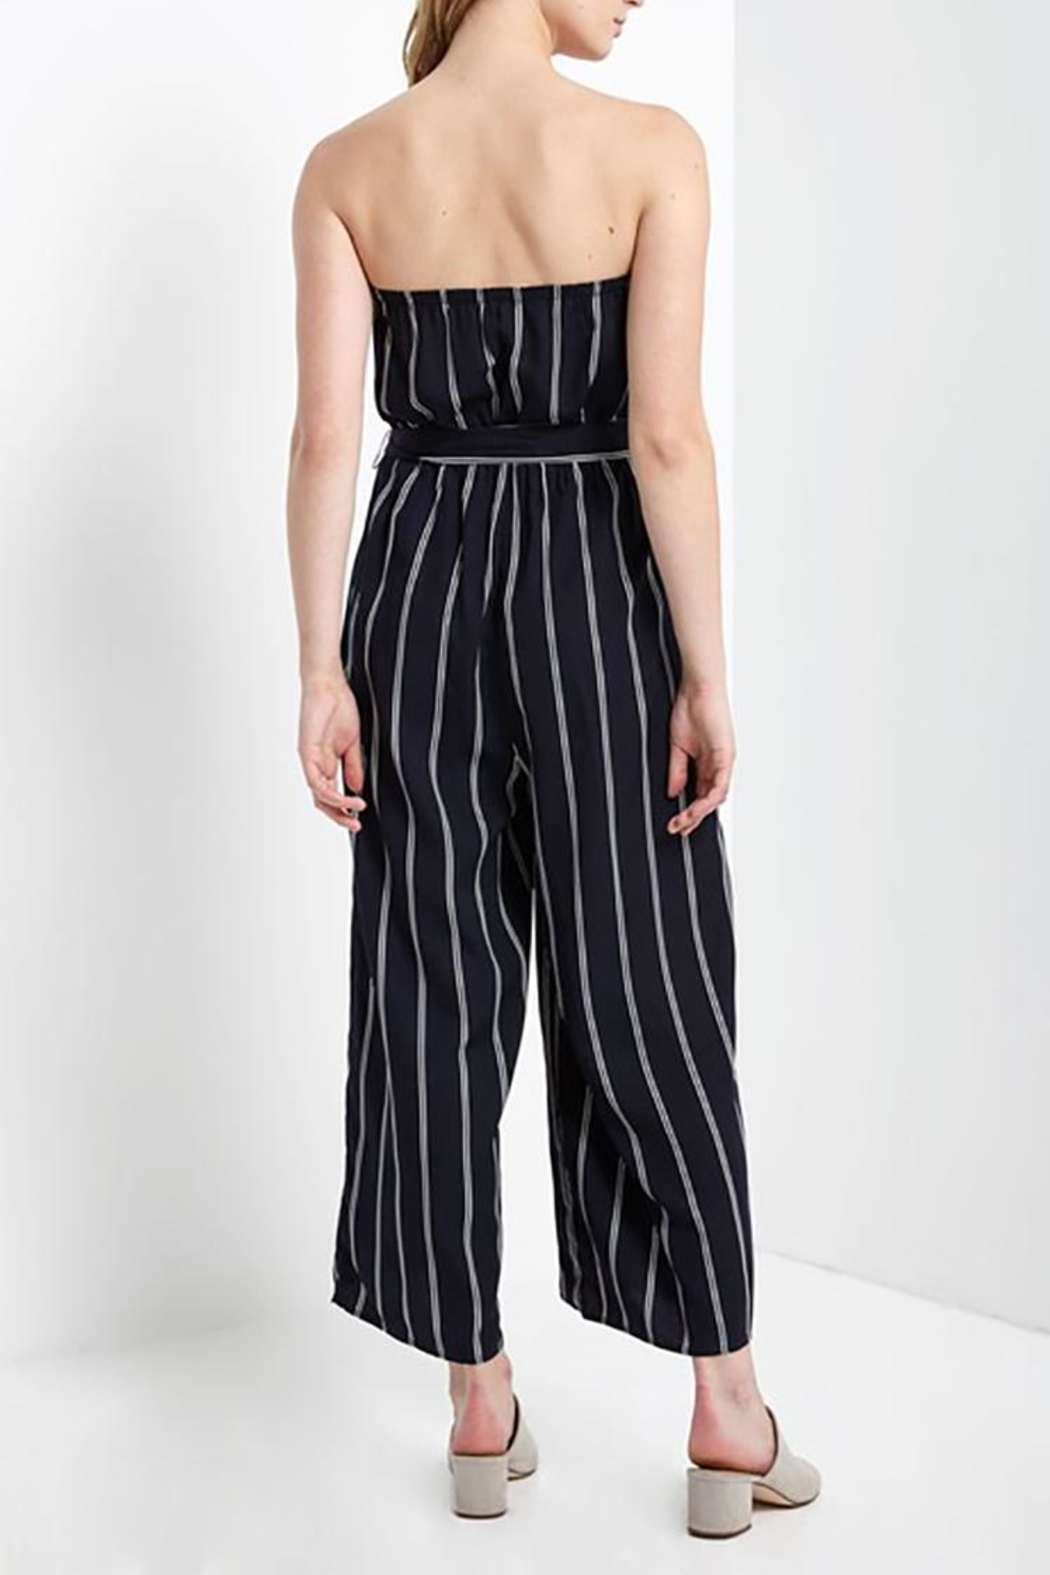 Mai Tai Strapless Striped Jumpsuit - Side Cropped Image